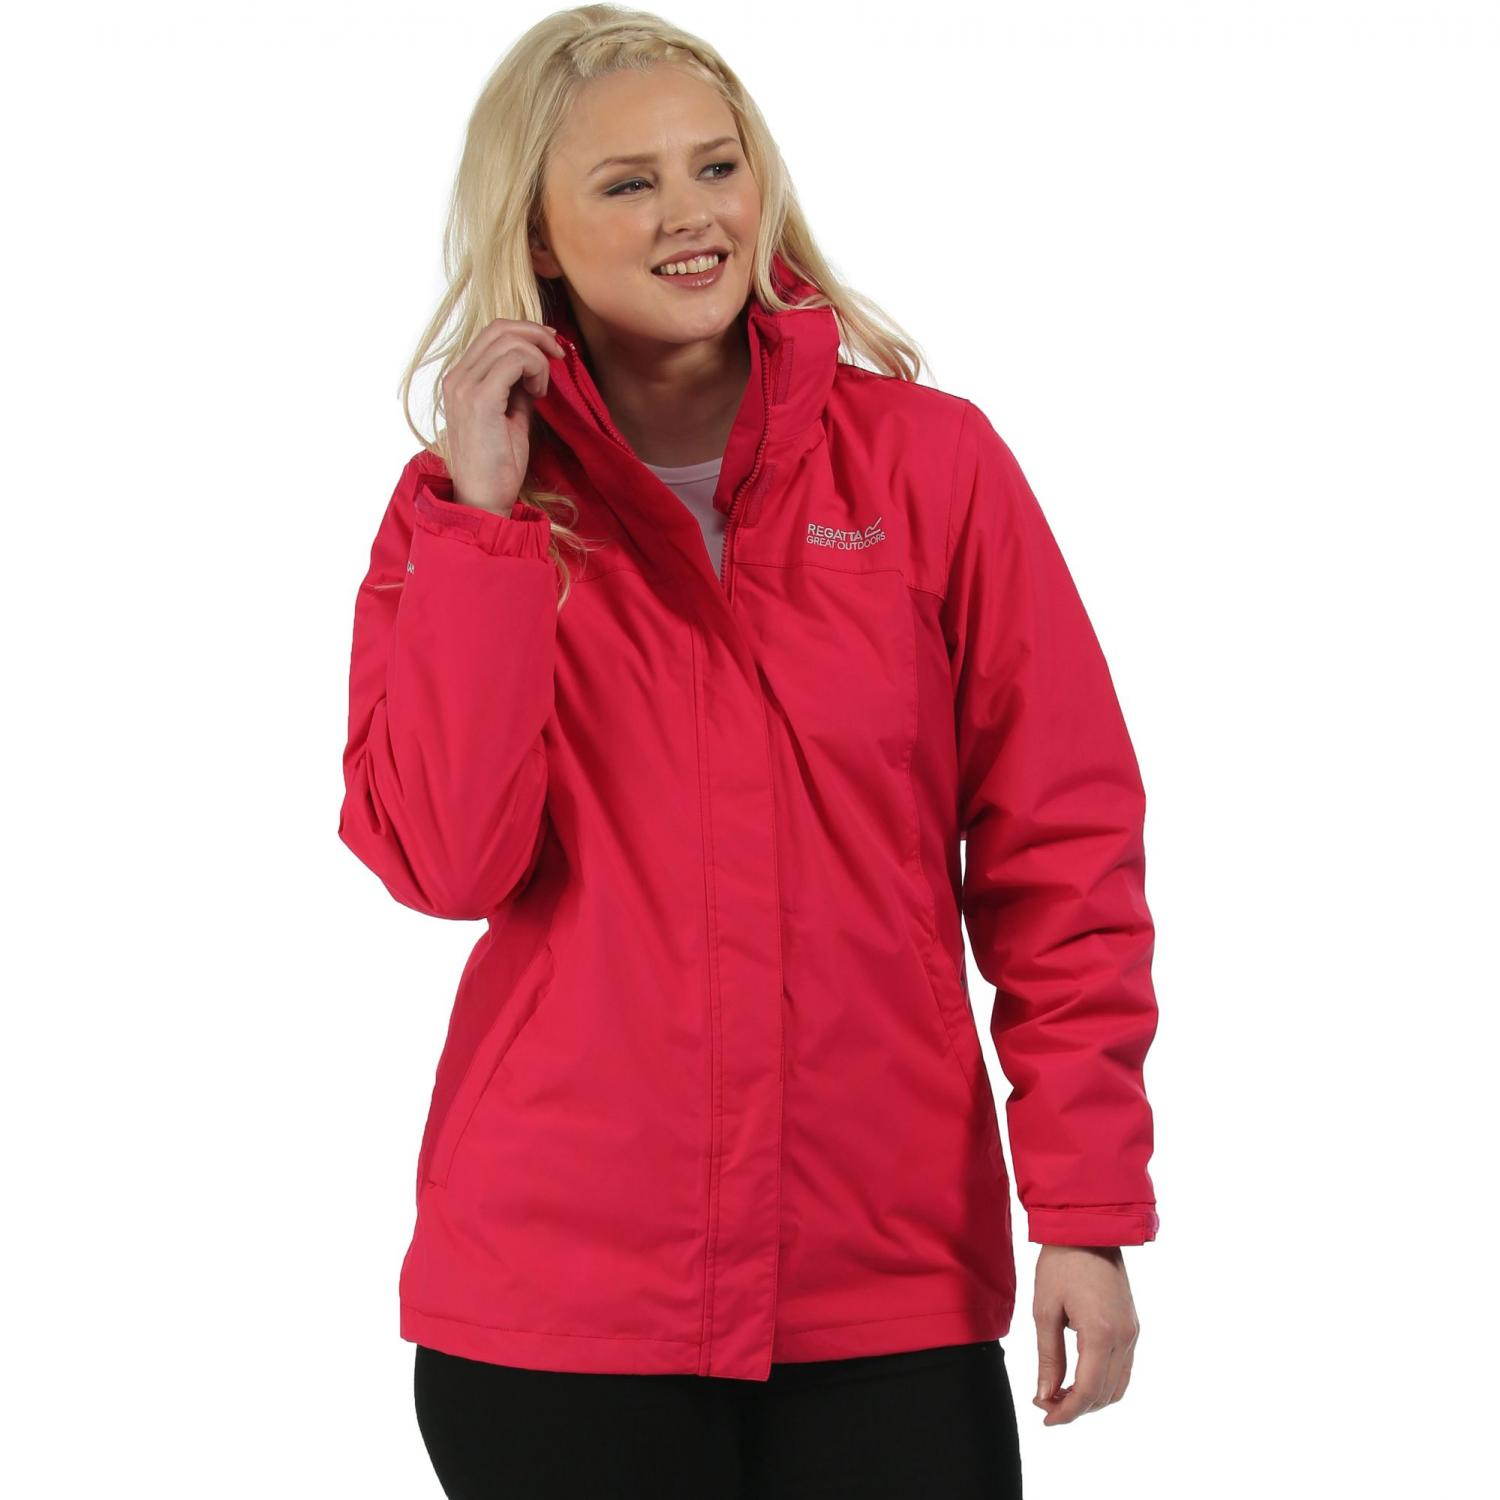 Preya III 3 in 1 Jacket Duchess Cerise